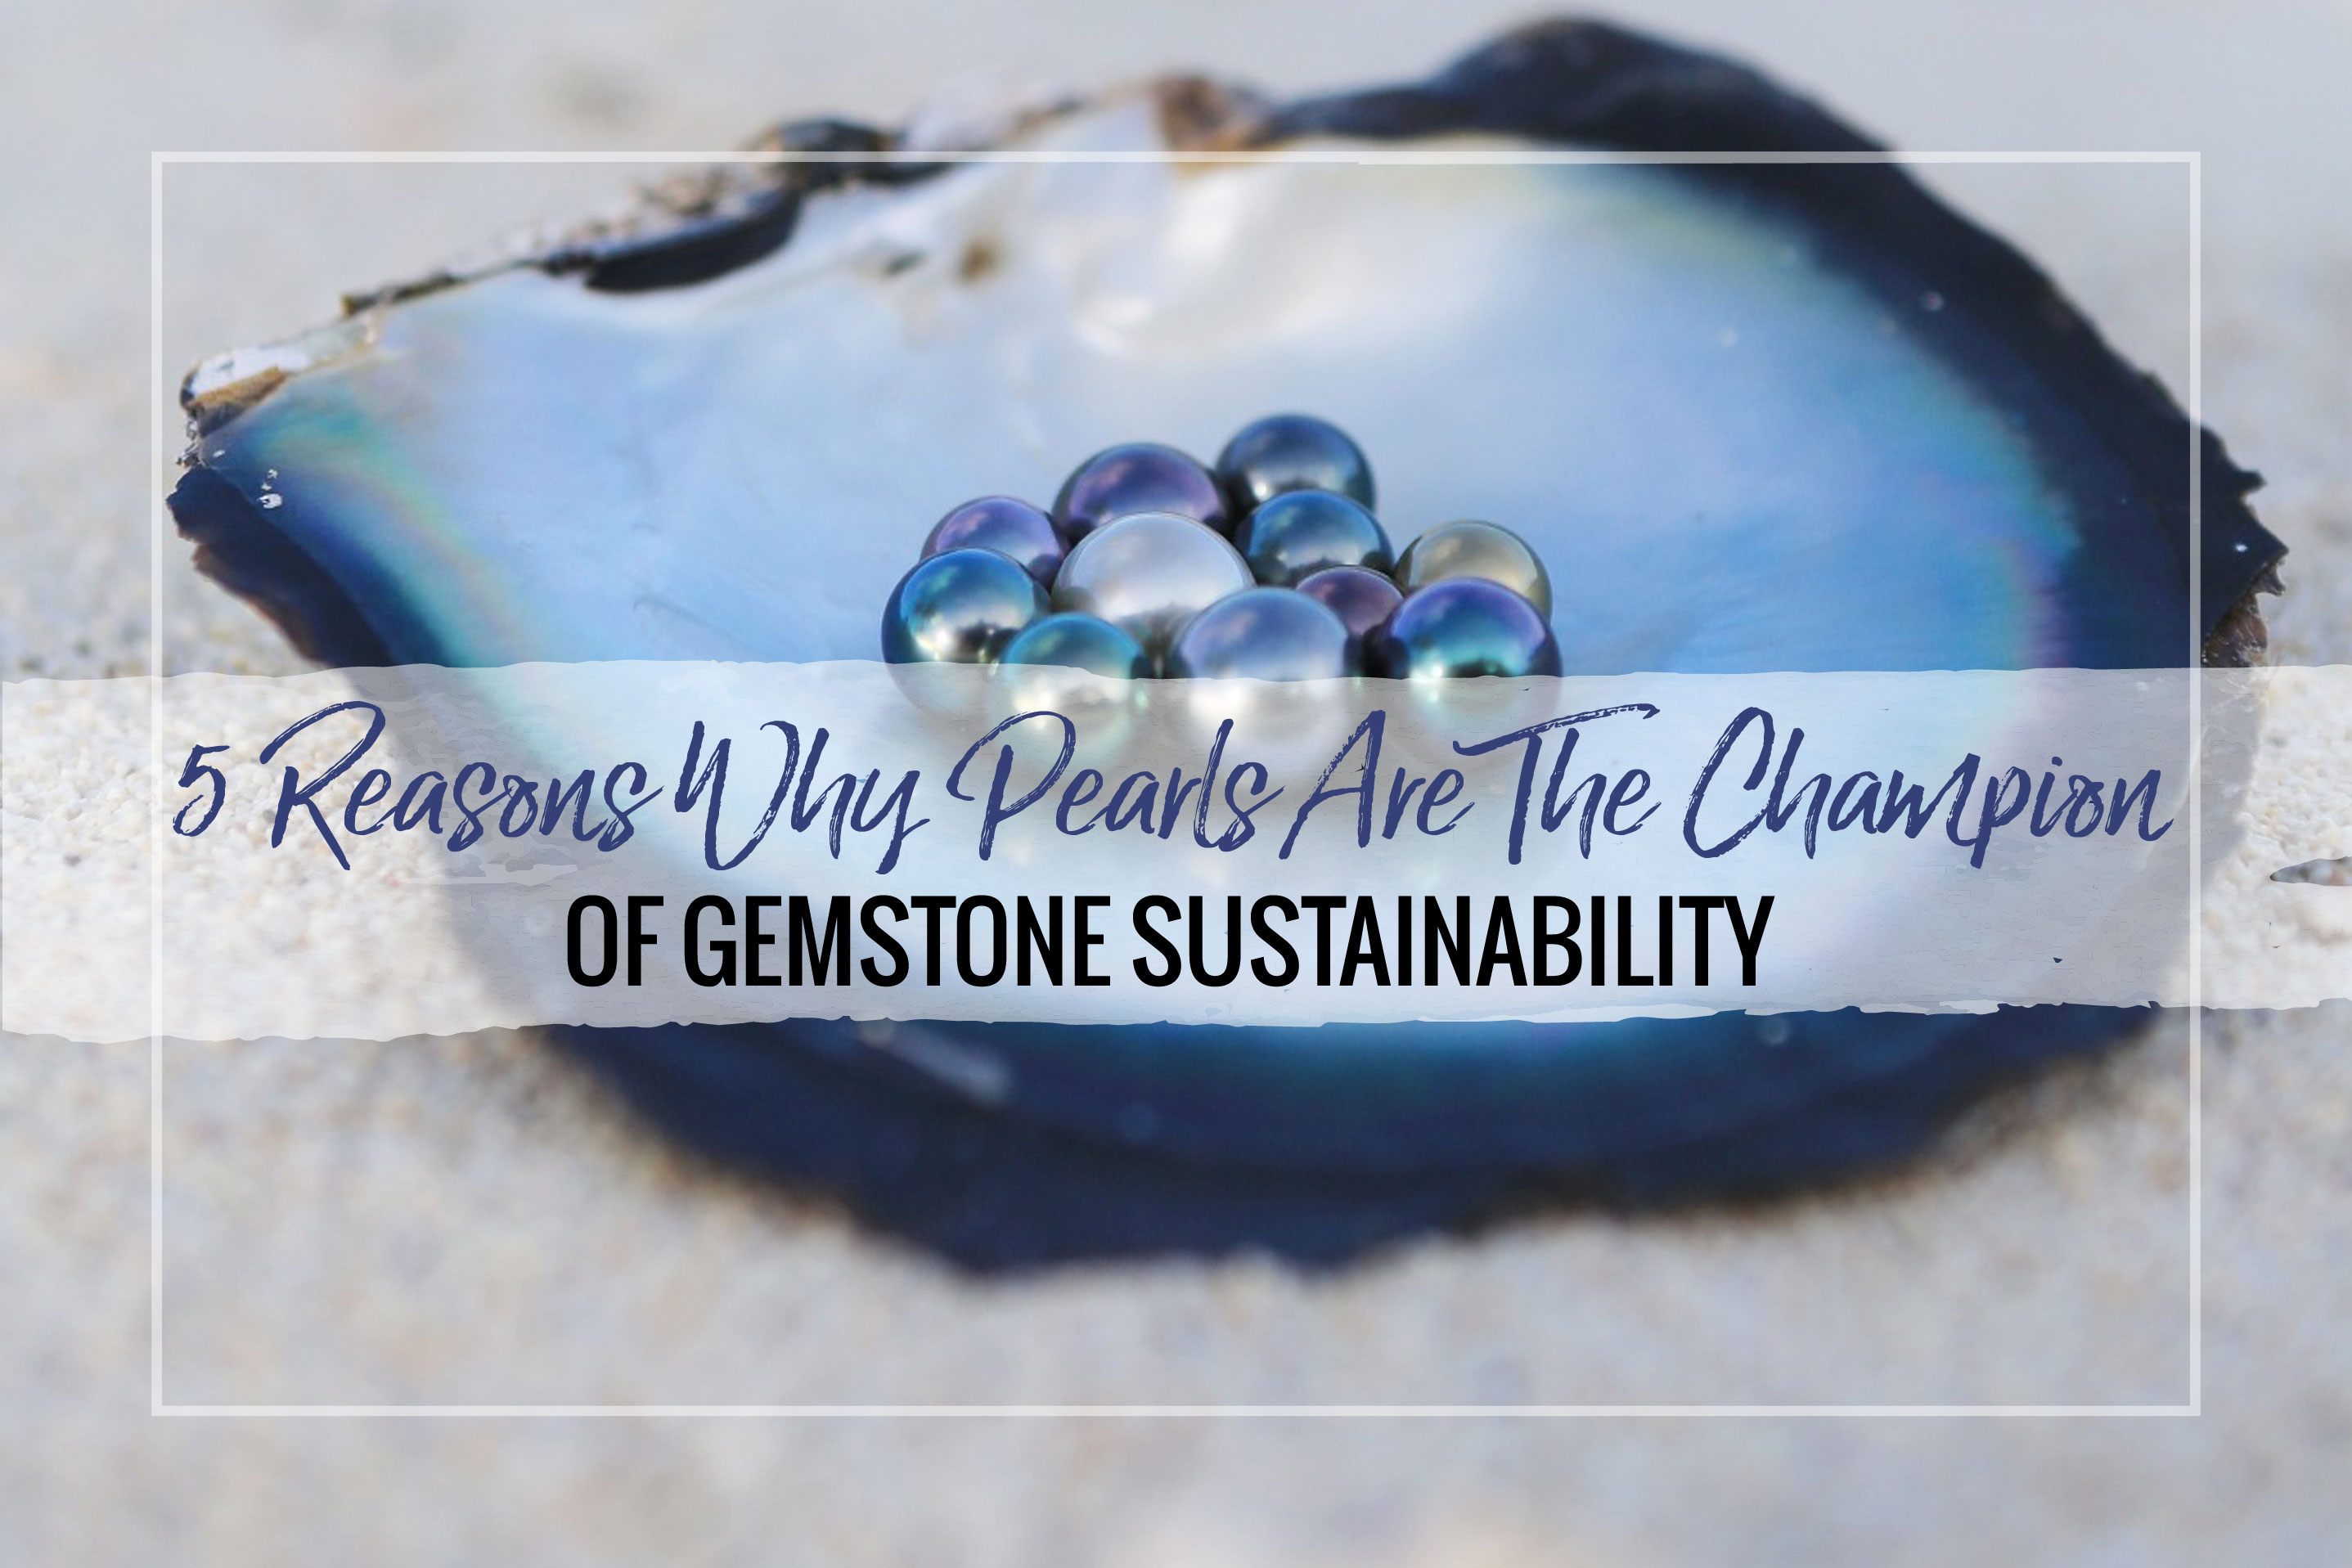 Pearls are the underdog of the sustainability movement in jewelry. Learn about how pearls can add to your jewelry collection sustainability.